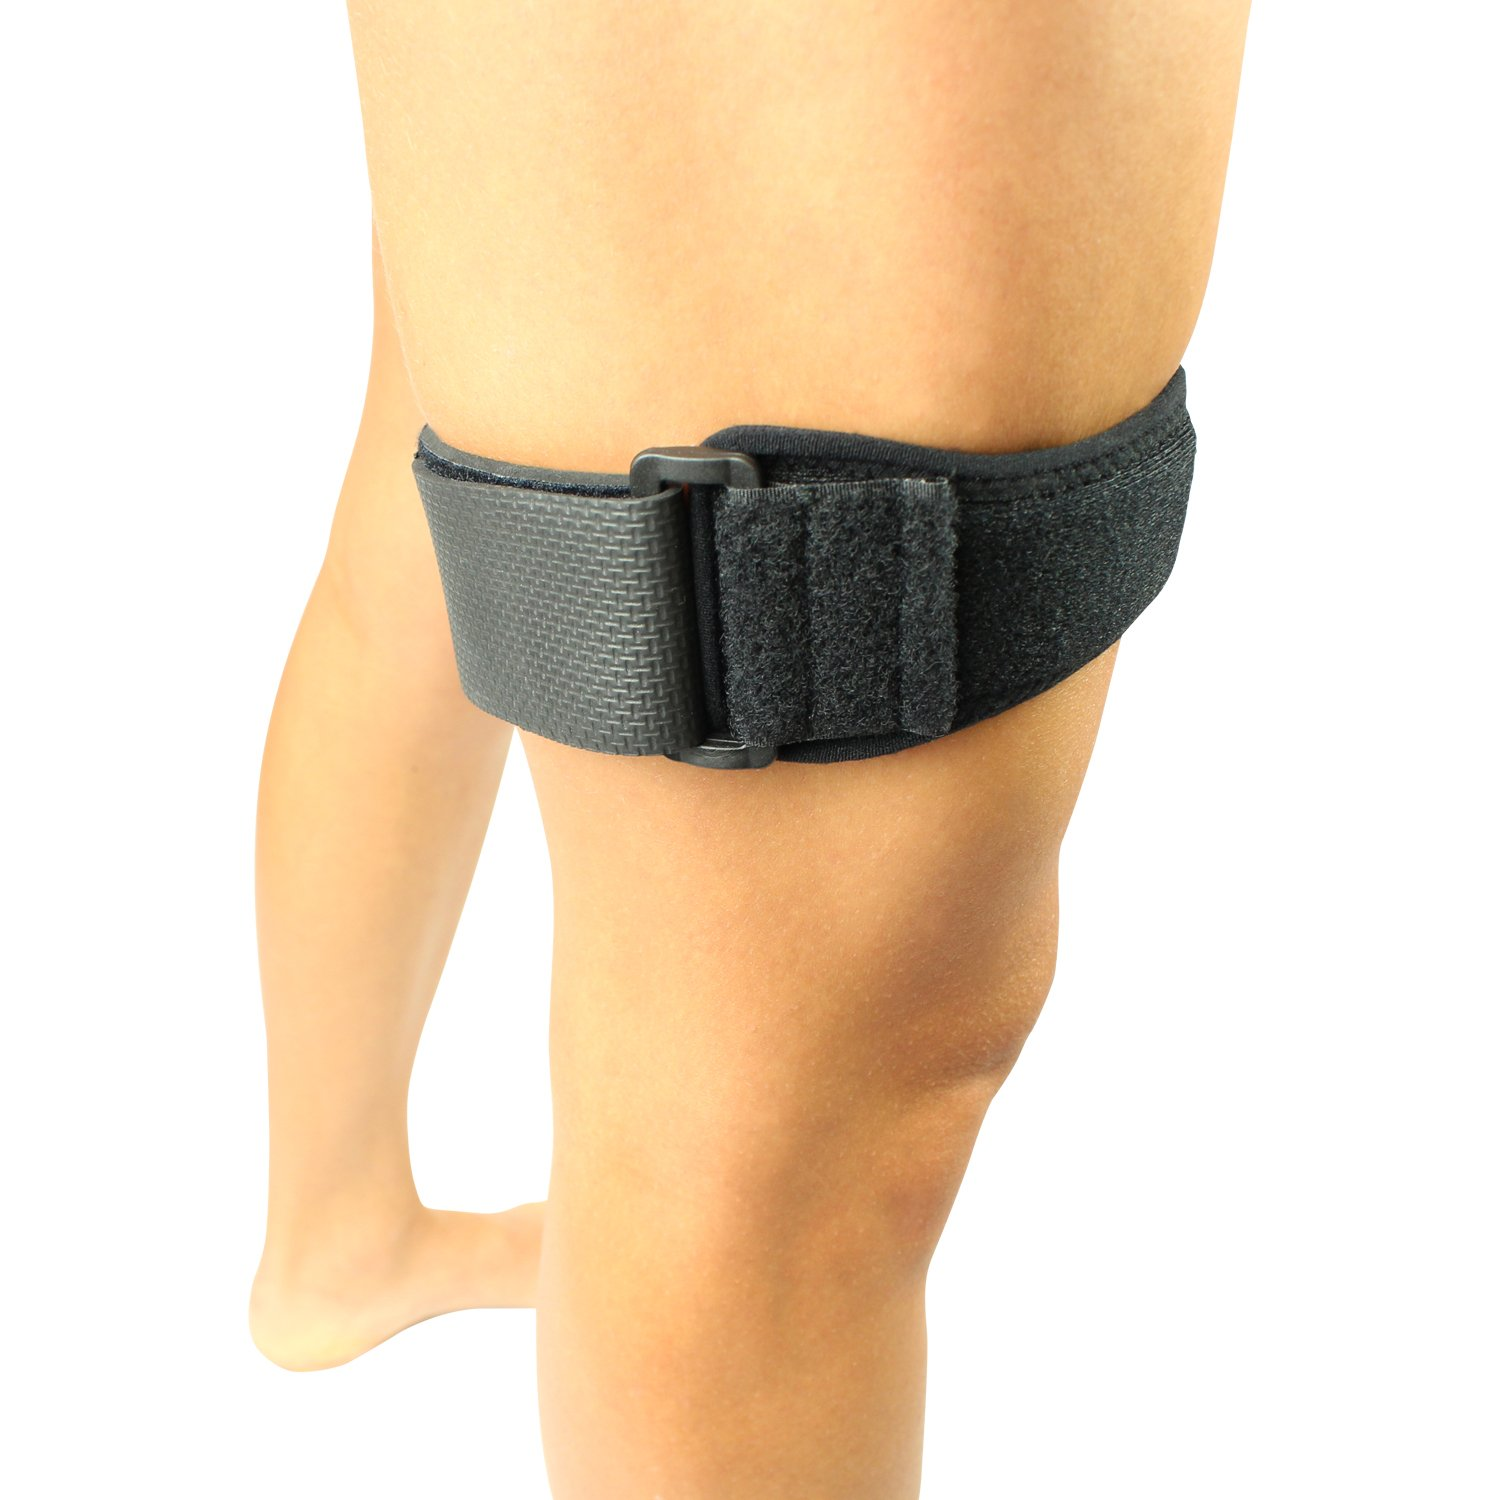 IT Band Strap by Vive - Iliotibial Band Compression Wrap - Outside of Knee Pain, Hip, Thigh & ITB Syndrome Support Brace for Running and Exercise